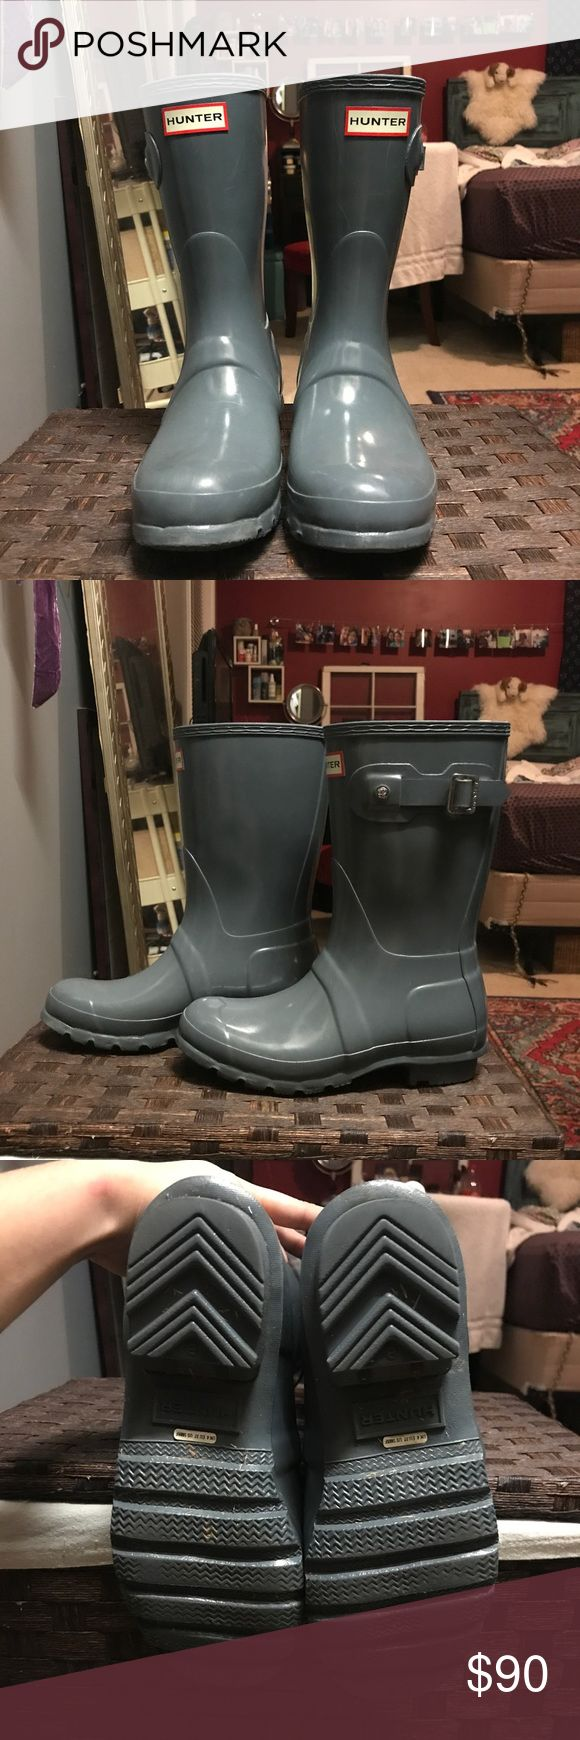 Short Hunter Rain Boots Grey/Light Blue Hunter's with a glossy finish! Great condition, only worn a handful of times. I will clean them before shipping but otherwise no harsh signs of wear. Will include original box! Make an offer✨ Hunter Boots Shoes Winter & Rain Boots